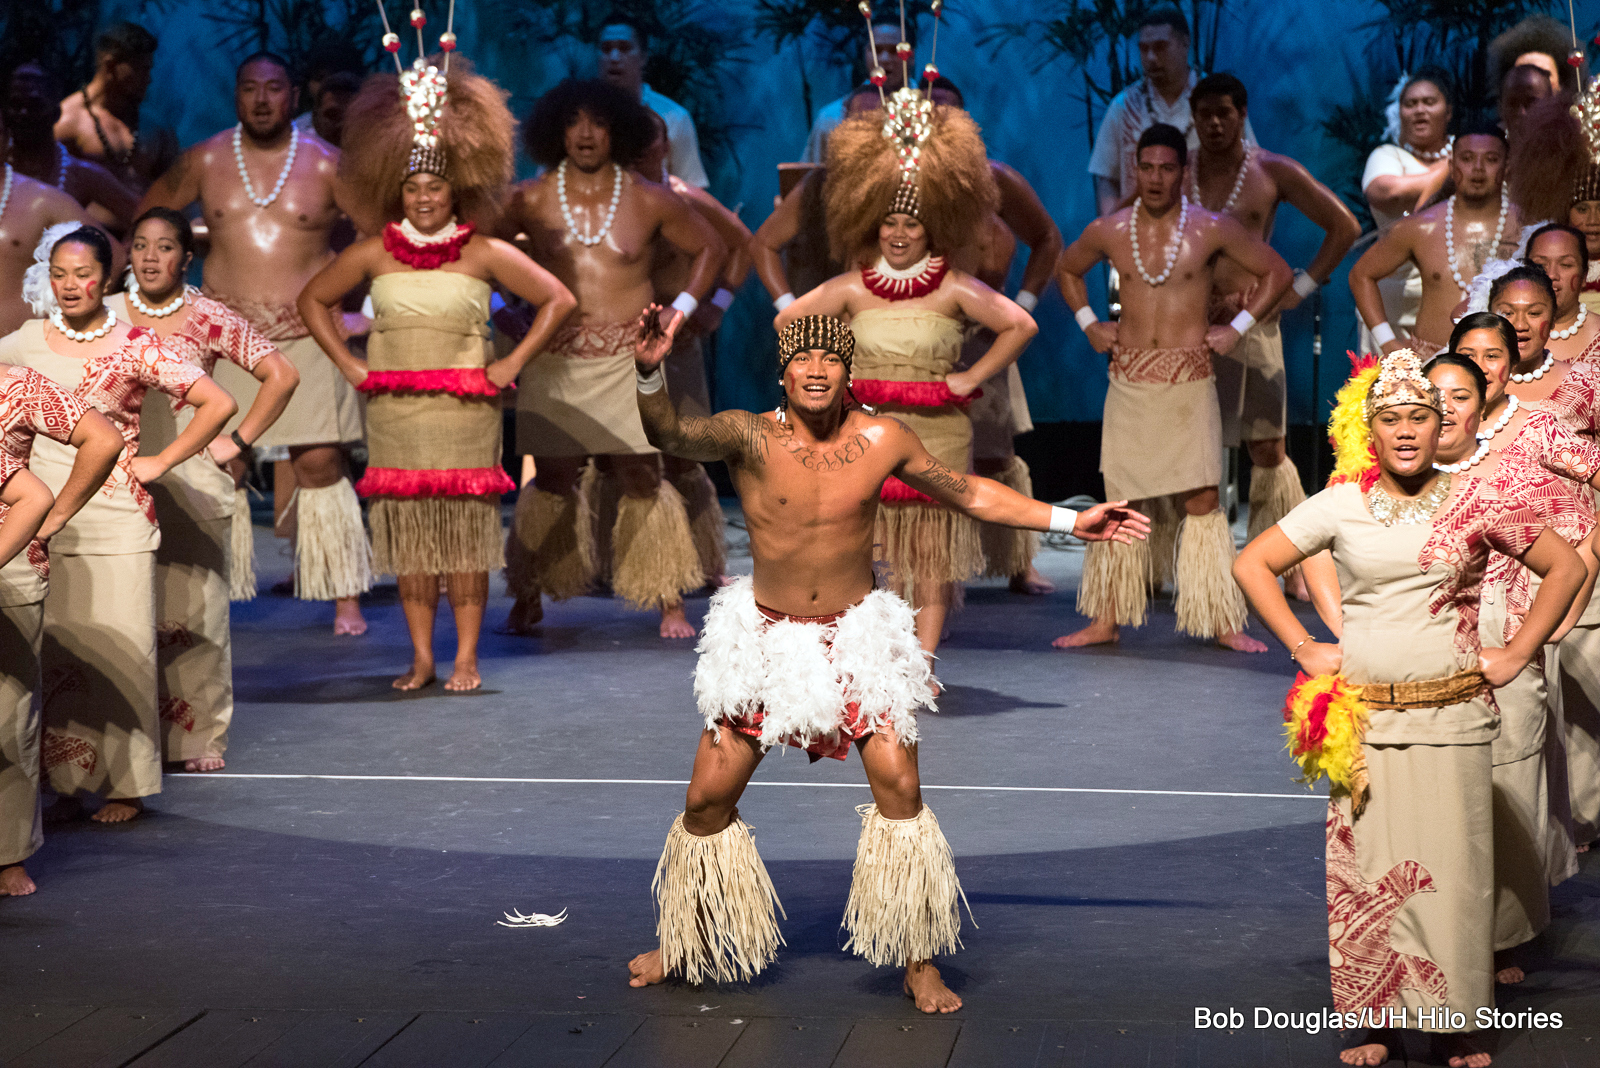 Single male dancer surrounded by group, costumes of beige and red, colorful, bold headdresses.